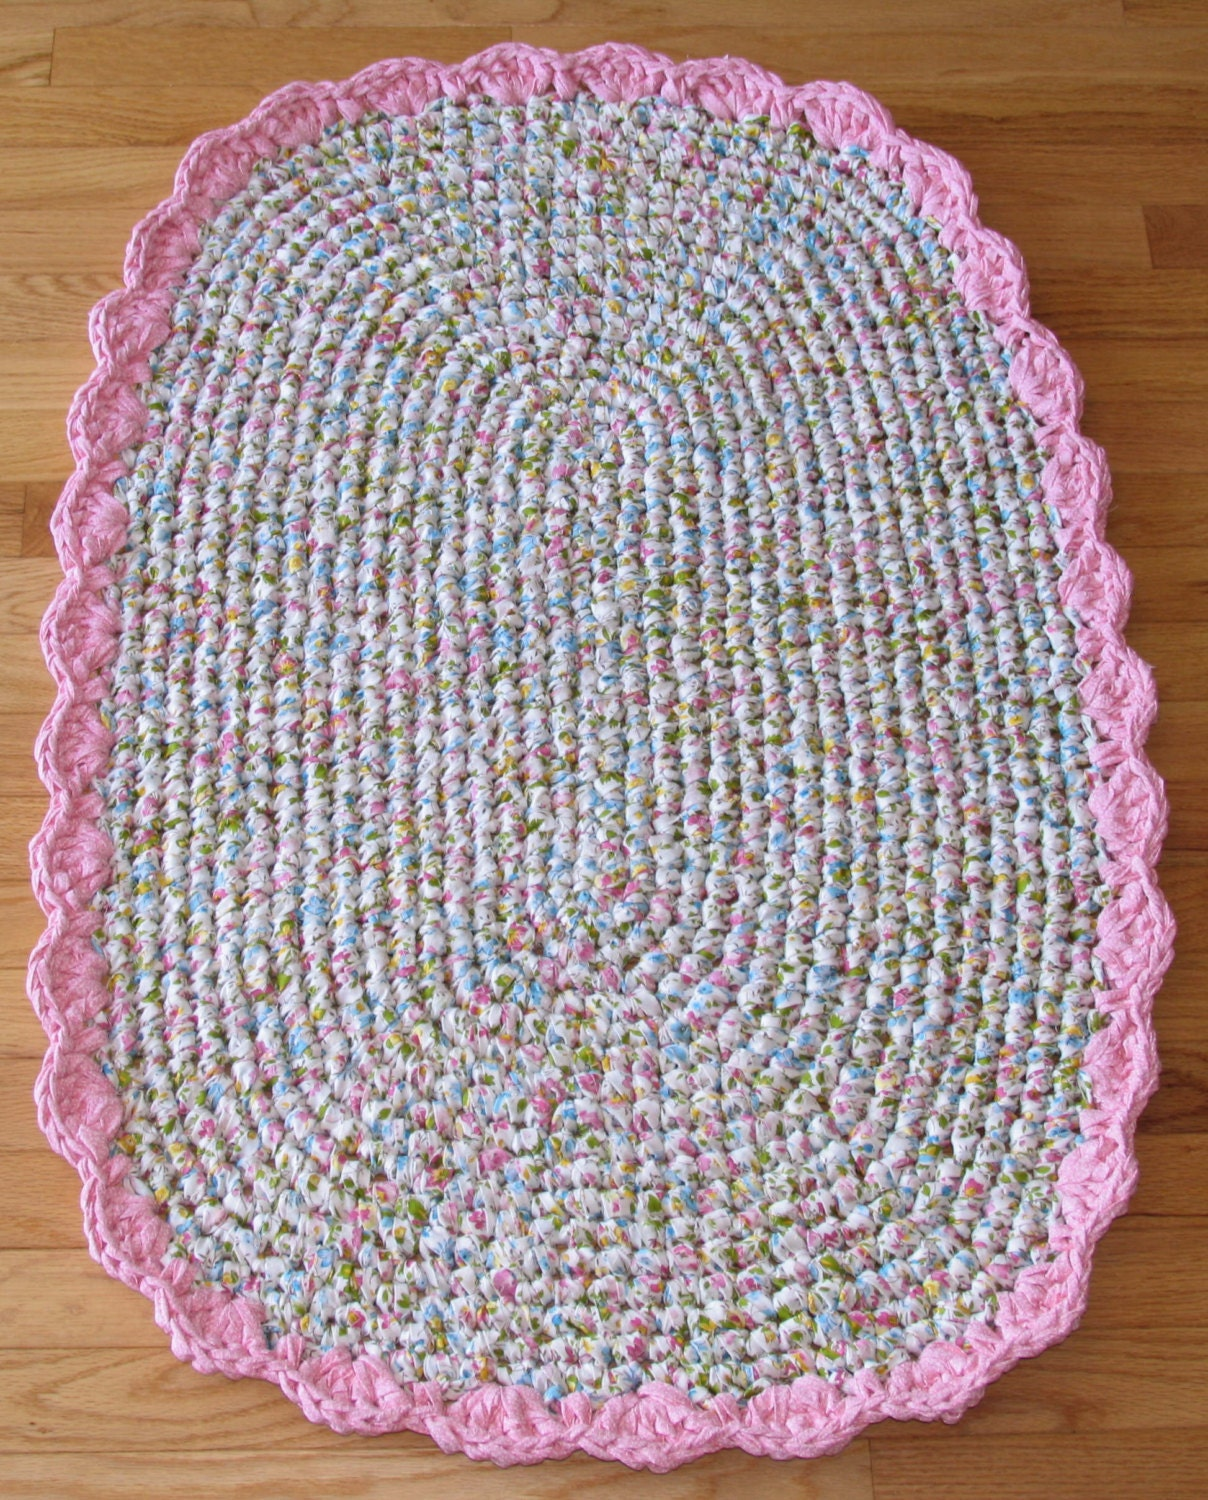 Hand Crocheted Cotton Fabric Oval Rag Rug Floral On By